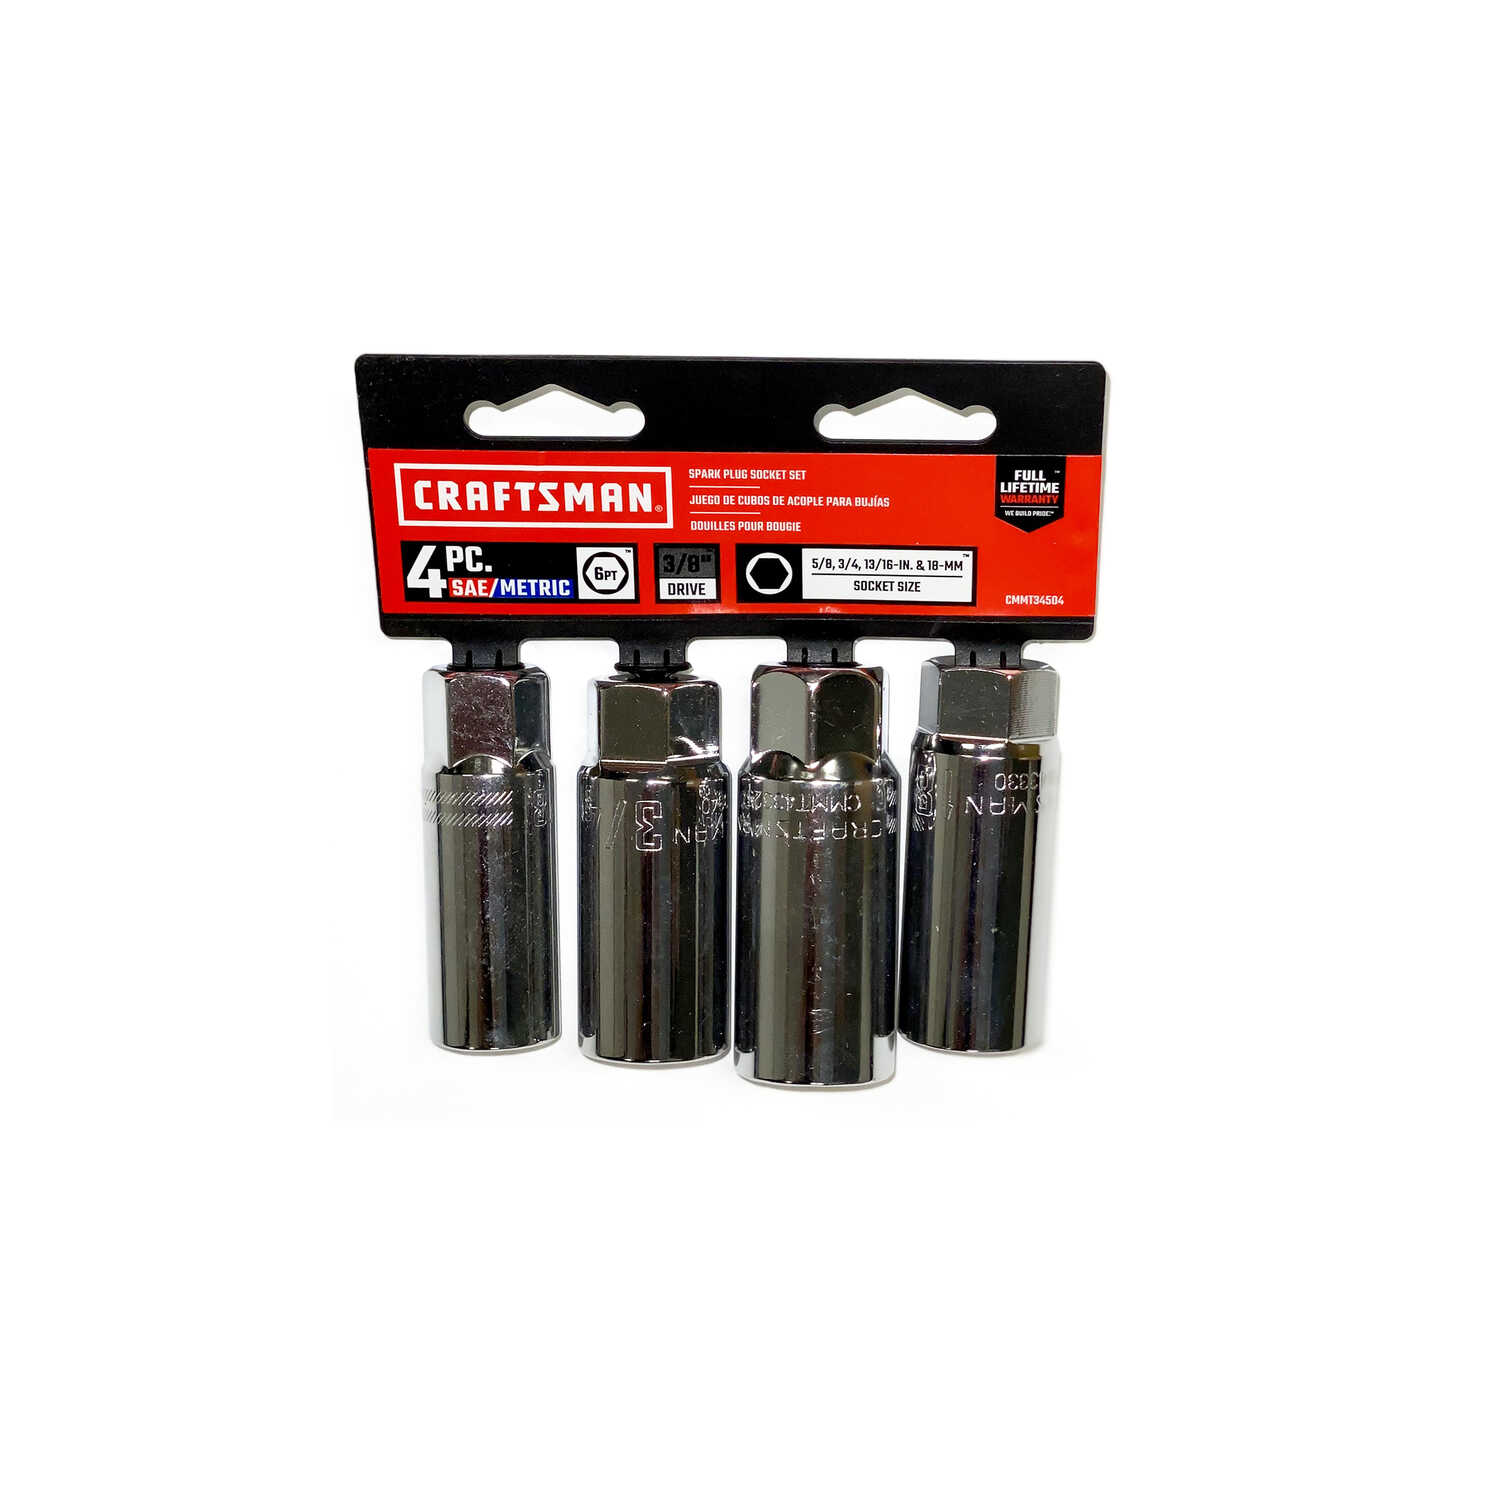 Craftsman  18 mm  x 3/8 in. drive  Metric and SAE  6 Point Standard  Spark Plug Socket  4 pc.